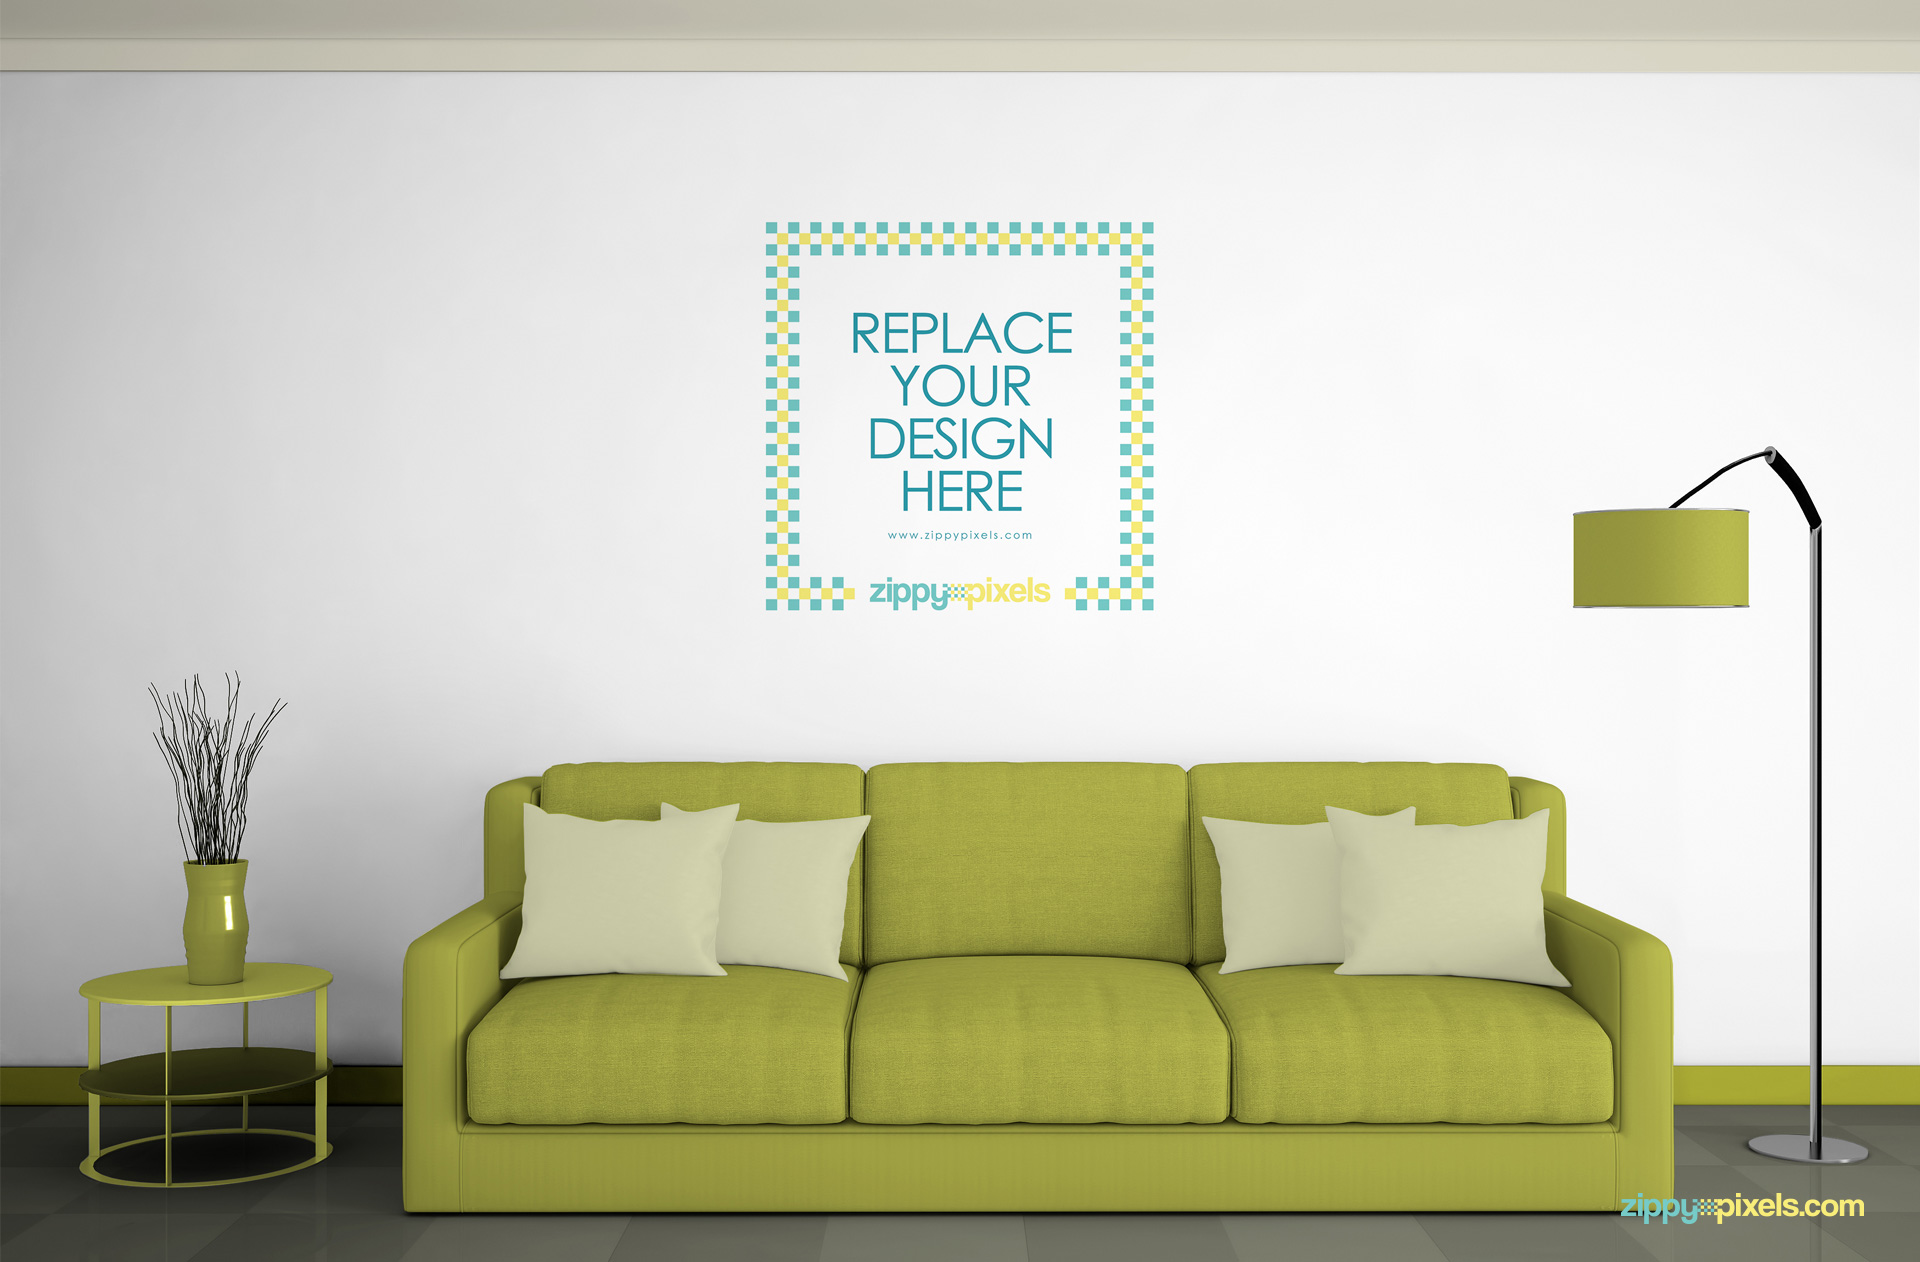 free wall mockup psd zippypixels goregeous wall art mockup for free